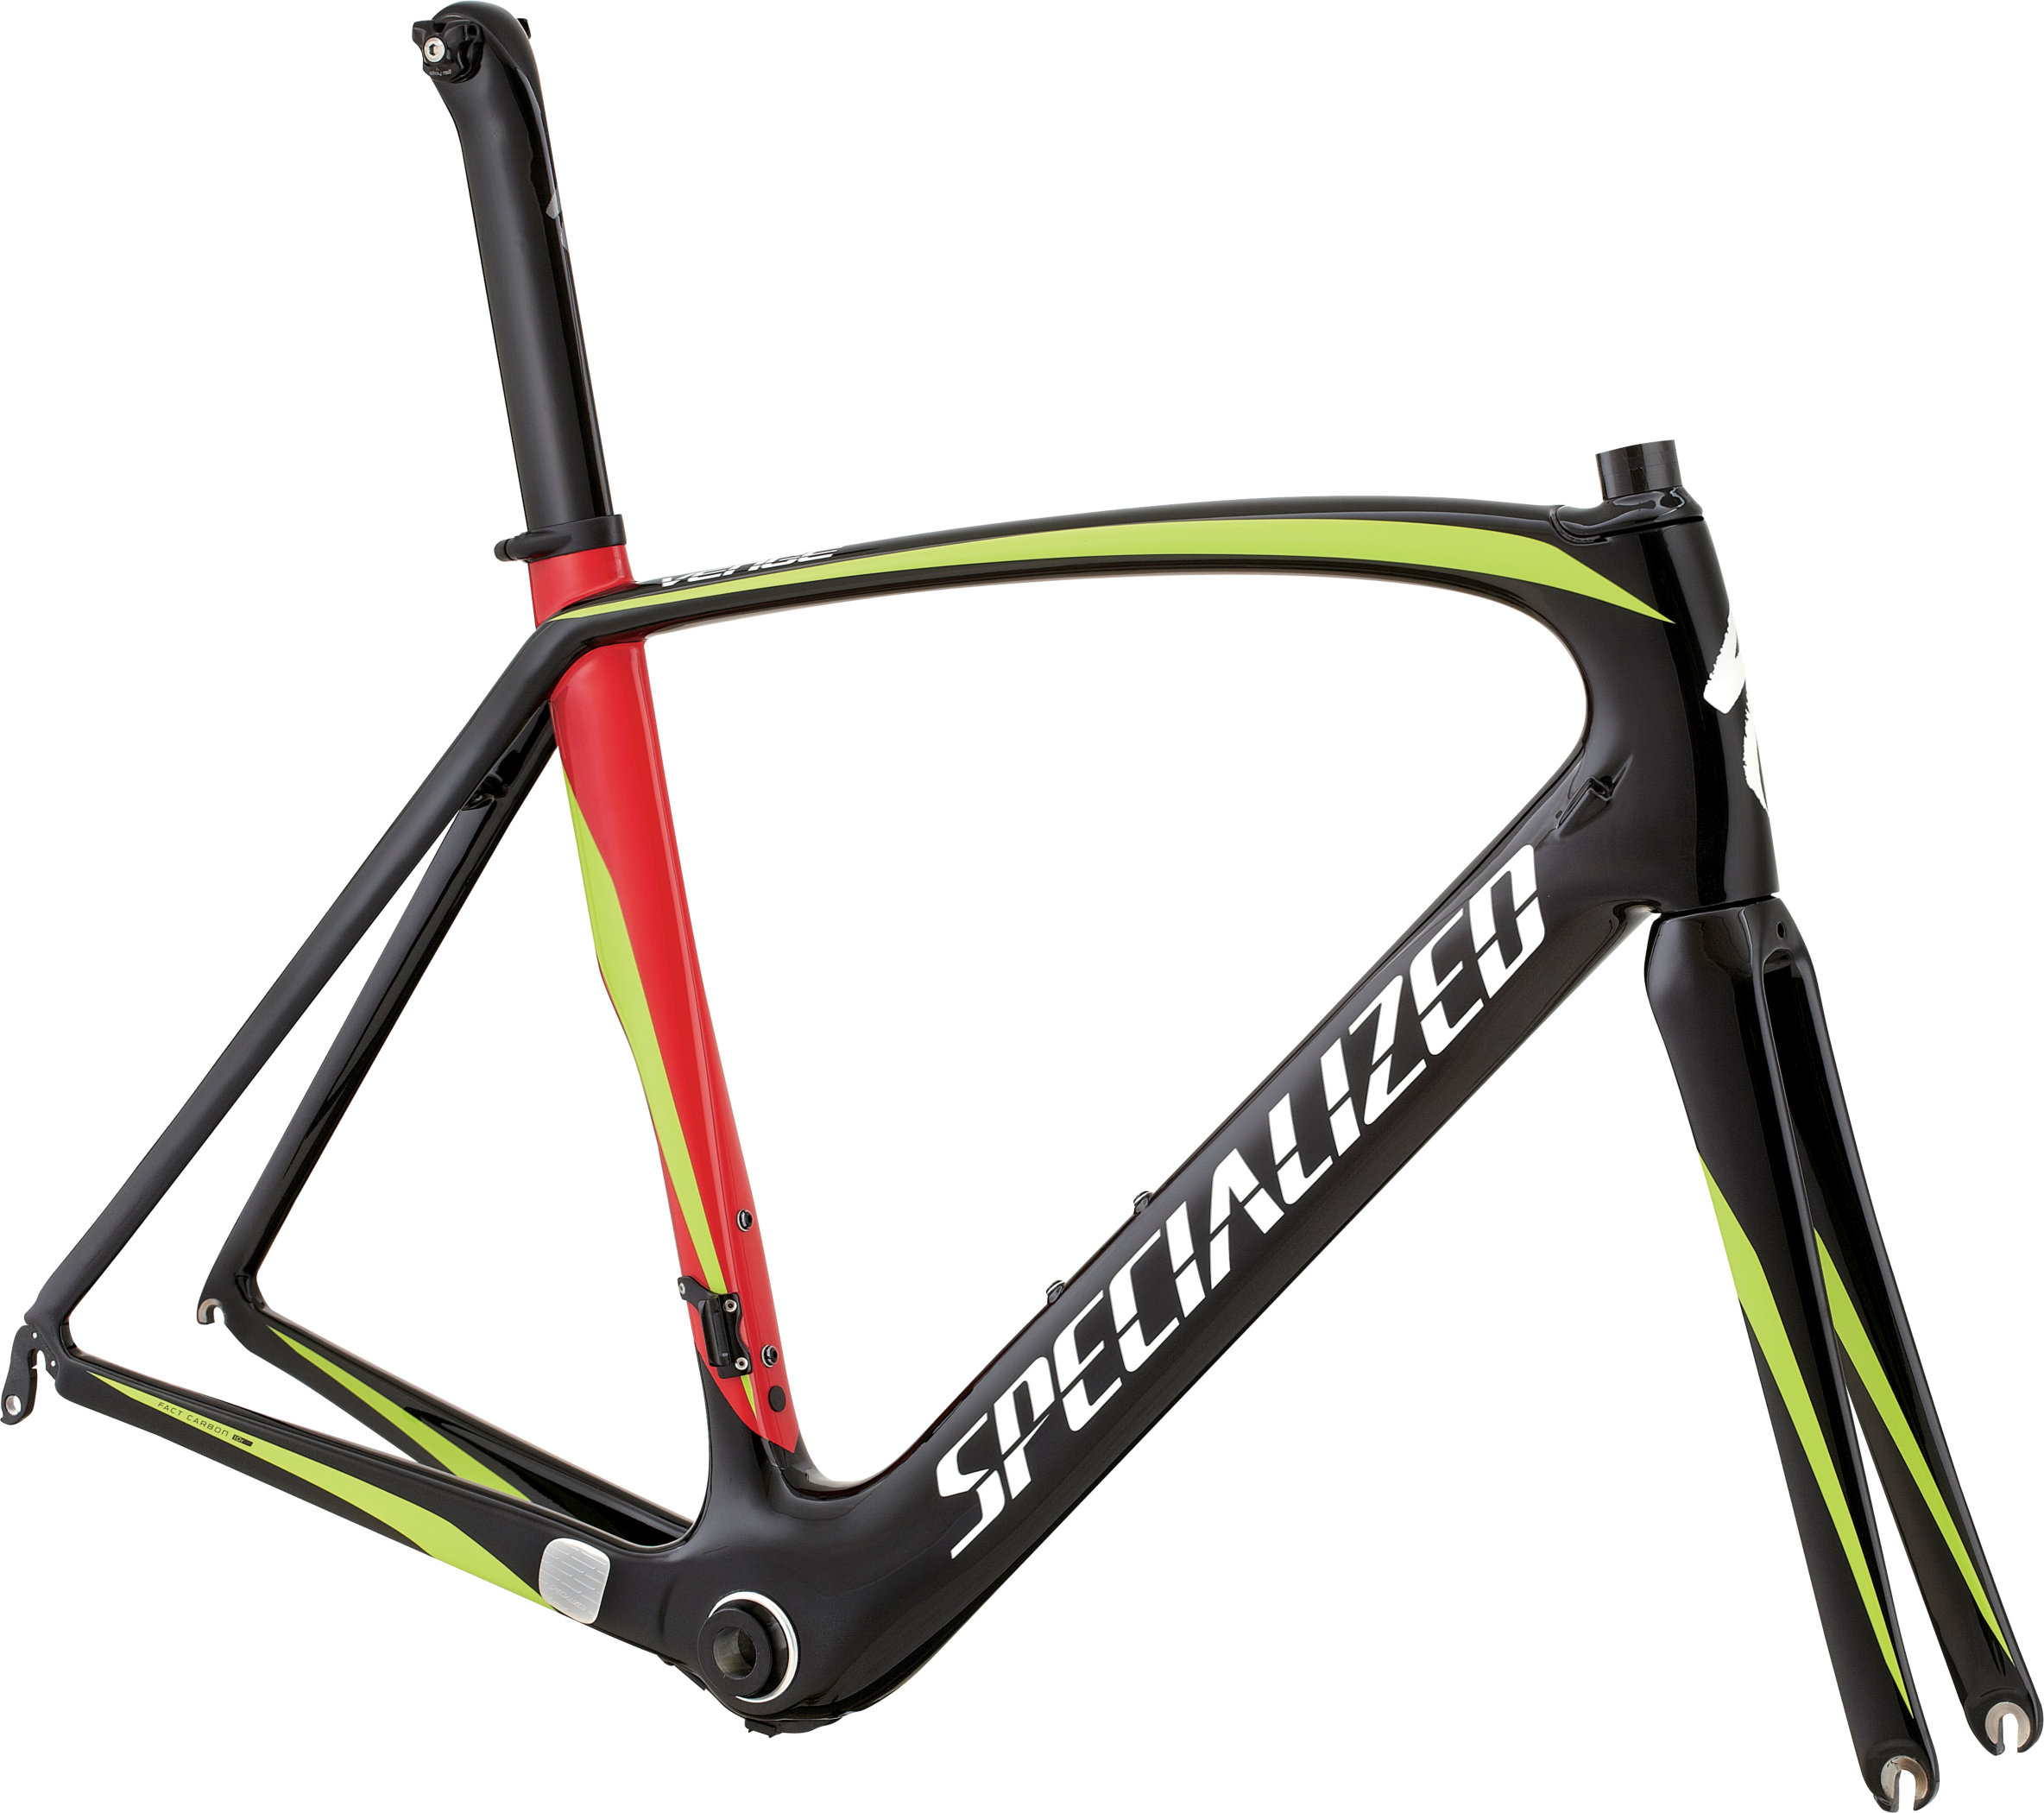 SPECIALIZED VENGE FRMSET TARBLK/HYP/RED 52 - SPECIALIZED VENGE FRMSET TARBLK/HYP/RED 52